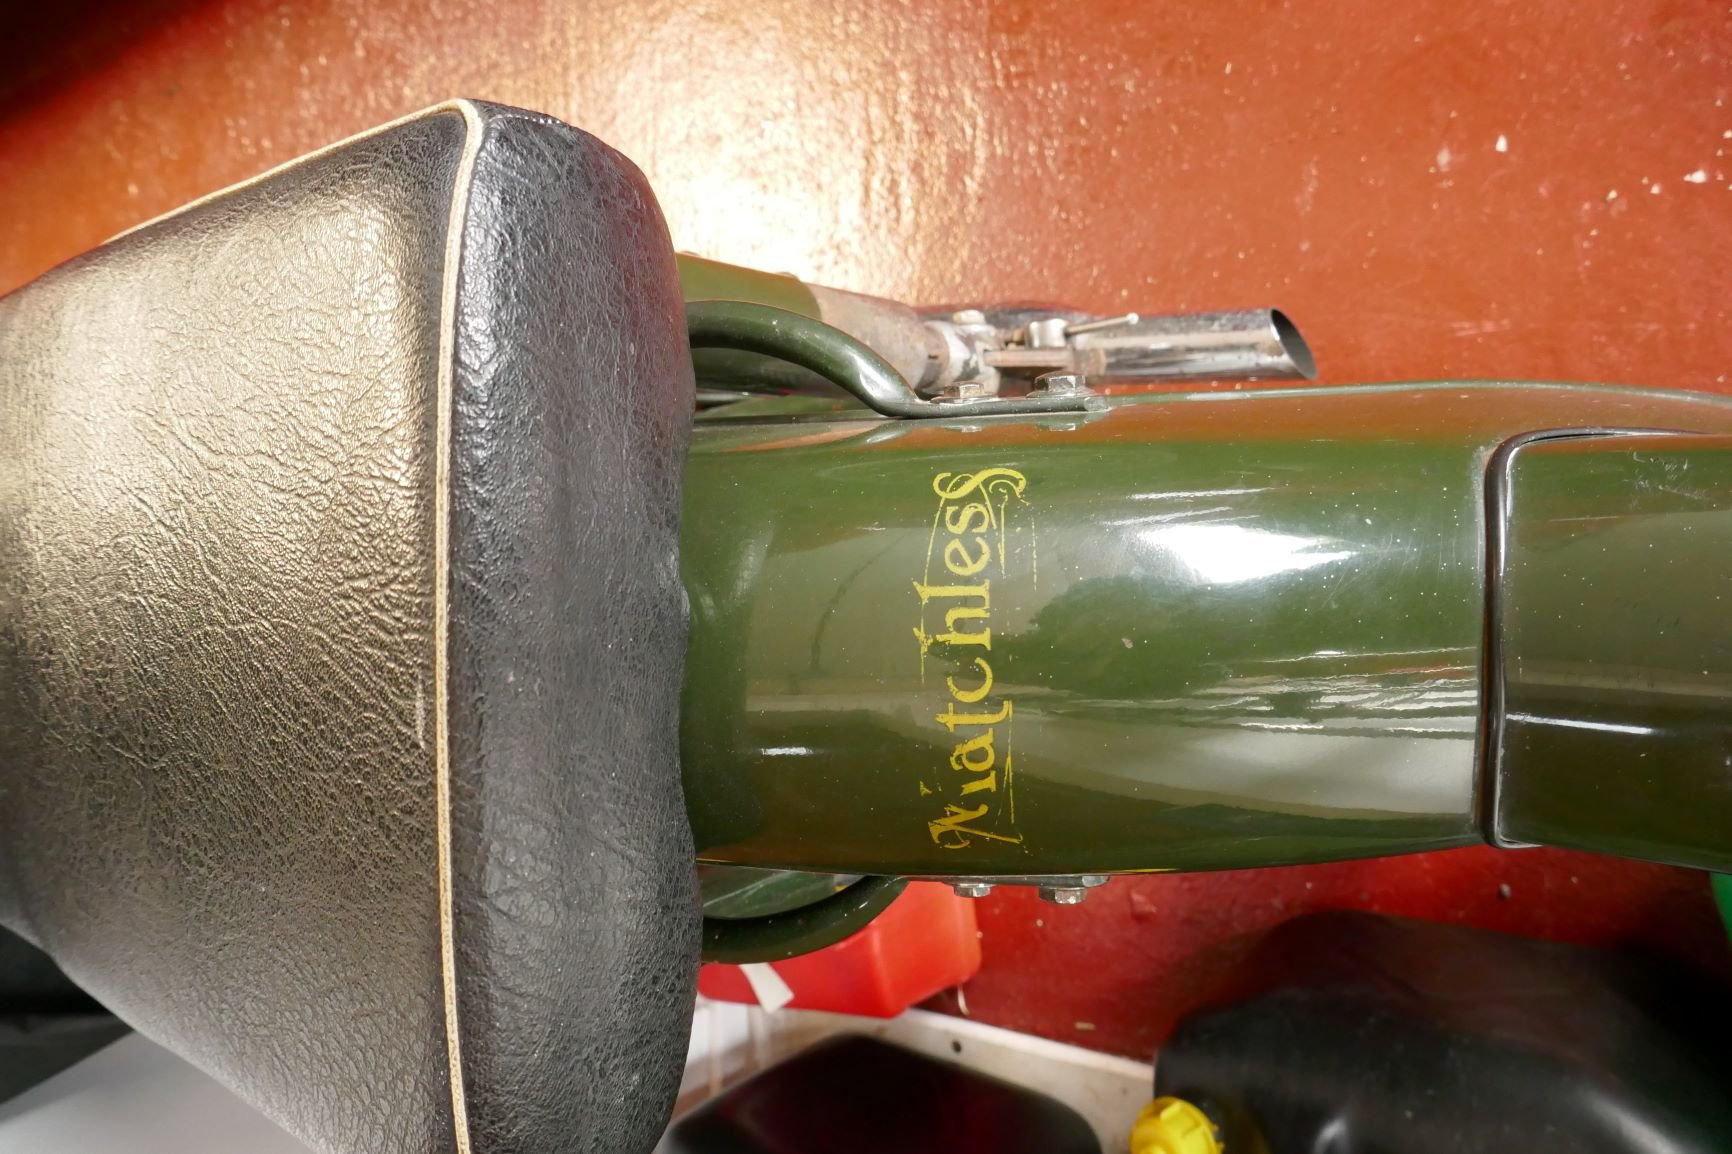 Matchless AFS green goddess ORIGINAL G3/L 350cc 1960 For Sale (picture 6 of 6)